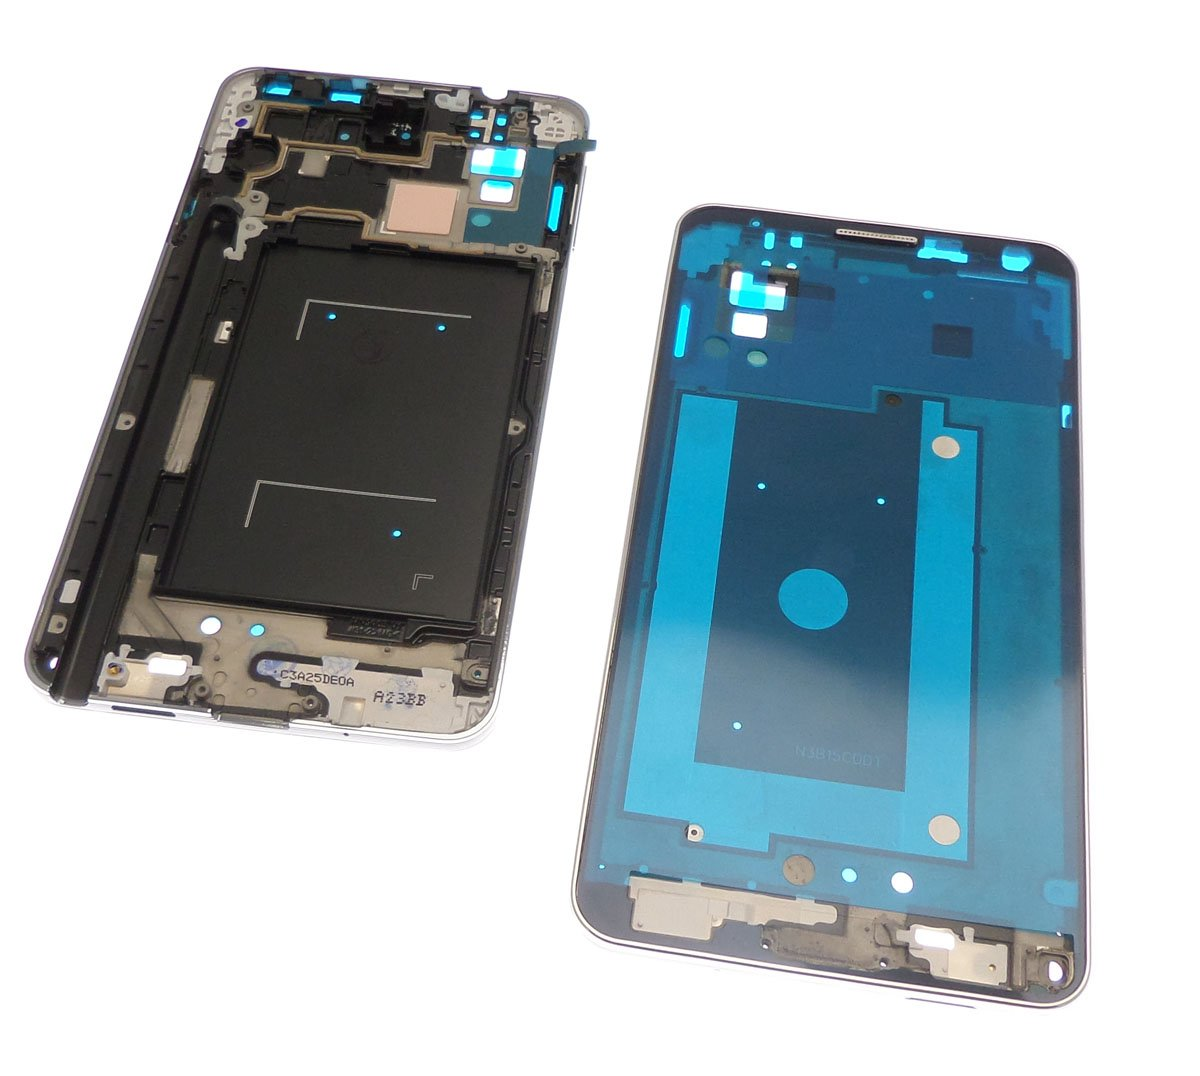 Chassis support du LCD pour Samsung Galaxy Note 3 N9000 N9005